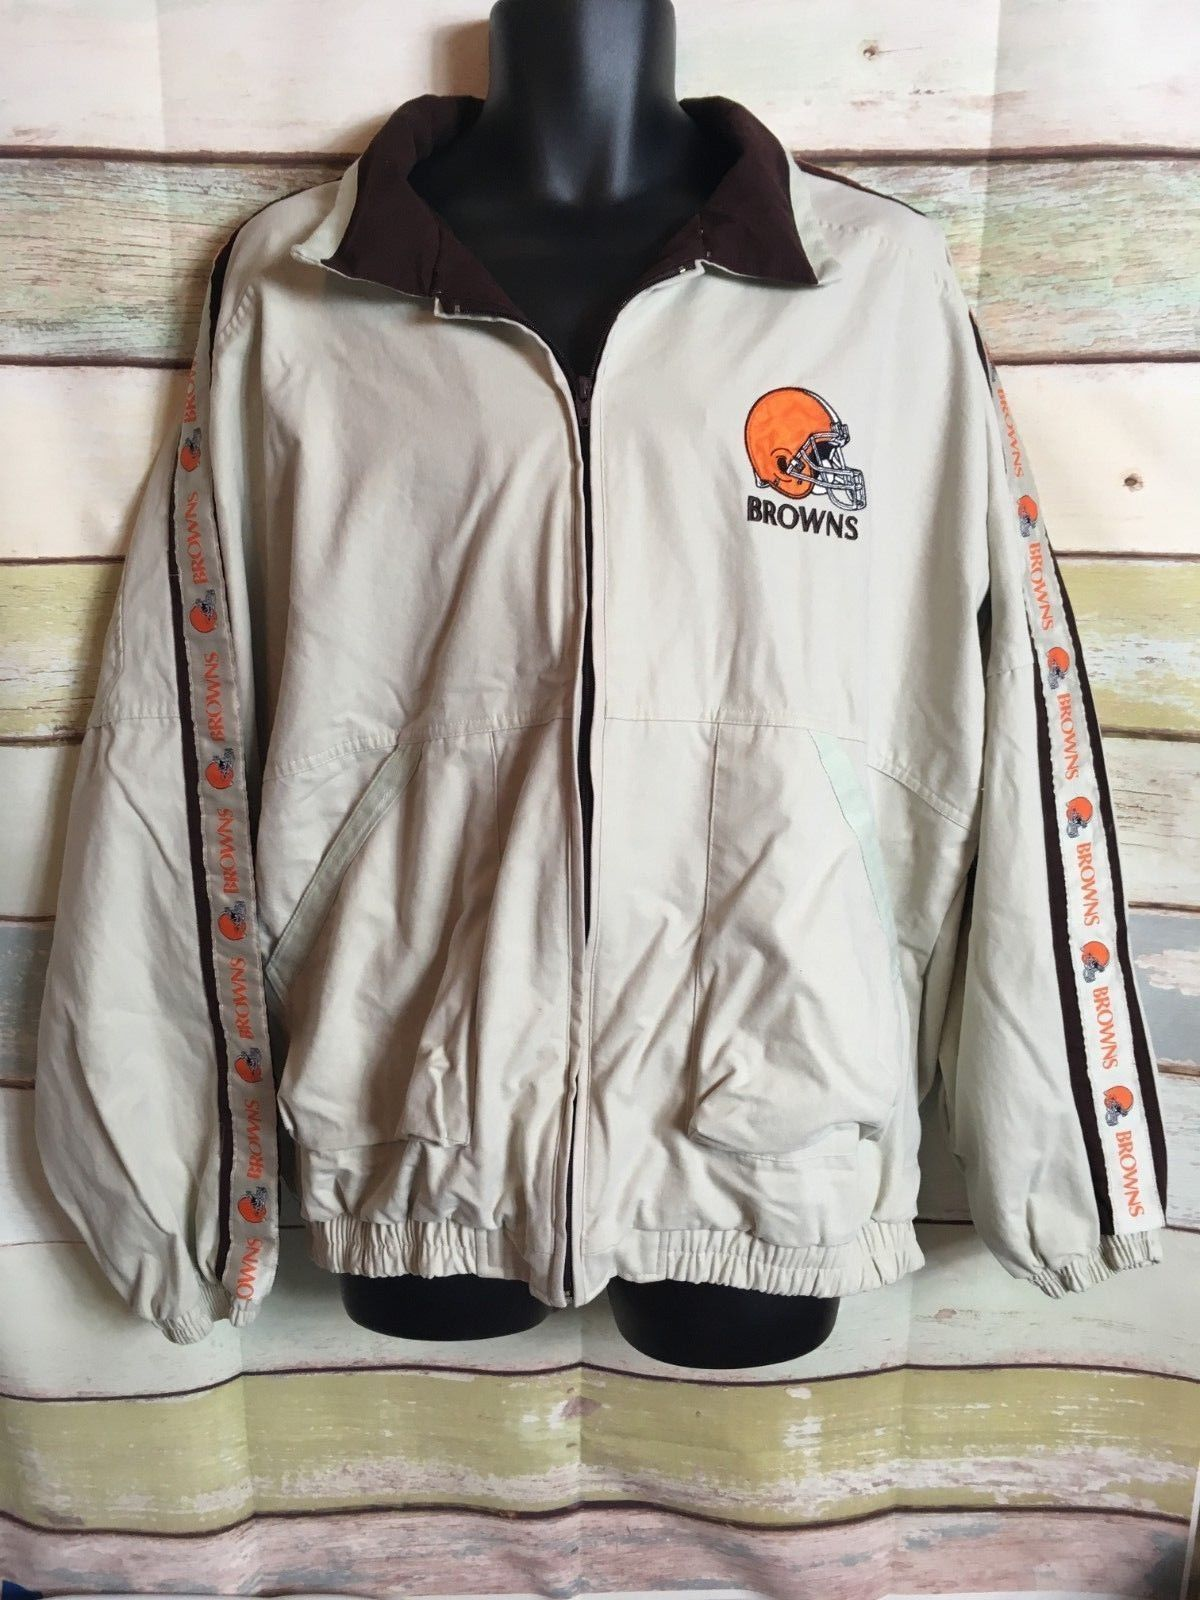 Primary image for Pro Player mens size xl Cleveland Browns Khaki Jacket Full Zip Front spell out